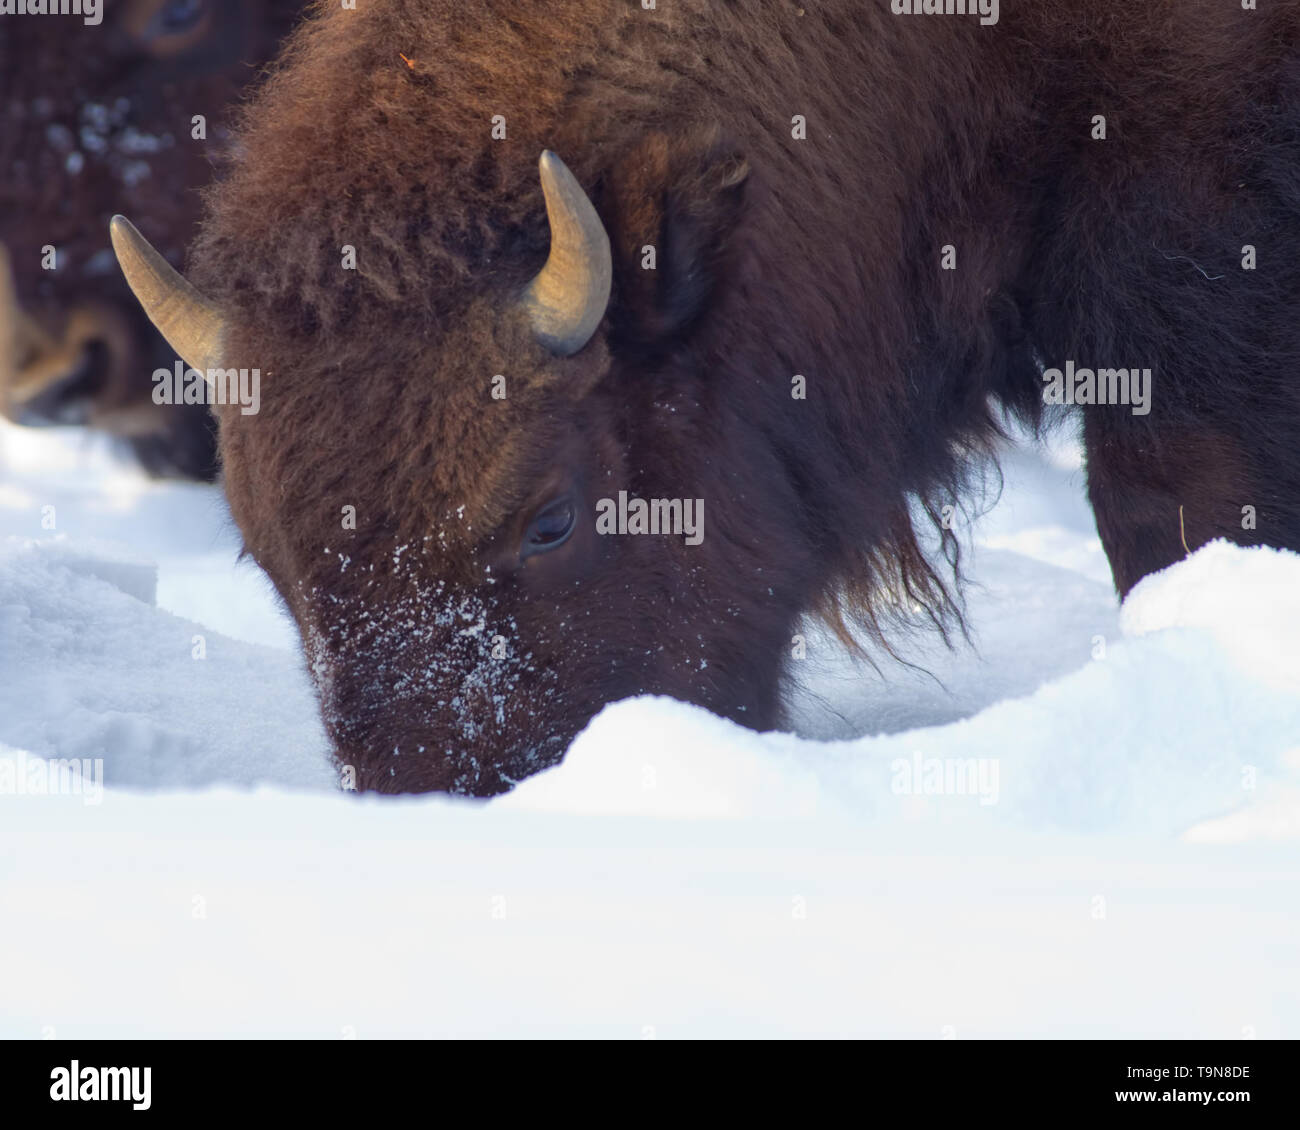 Buffalo at Yellowstone National Park in the winter time - Mammoth - Stock Image